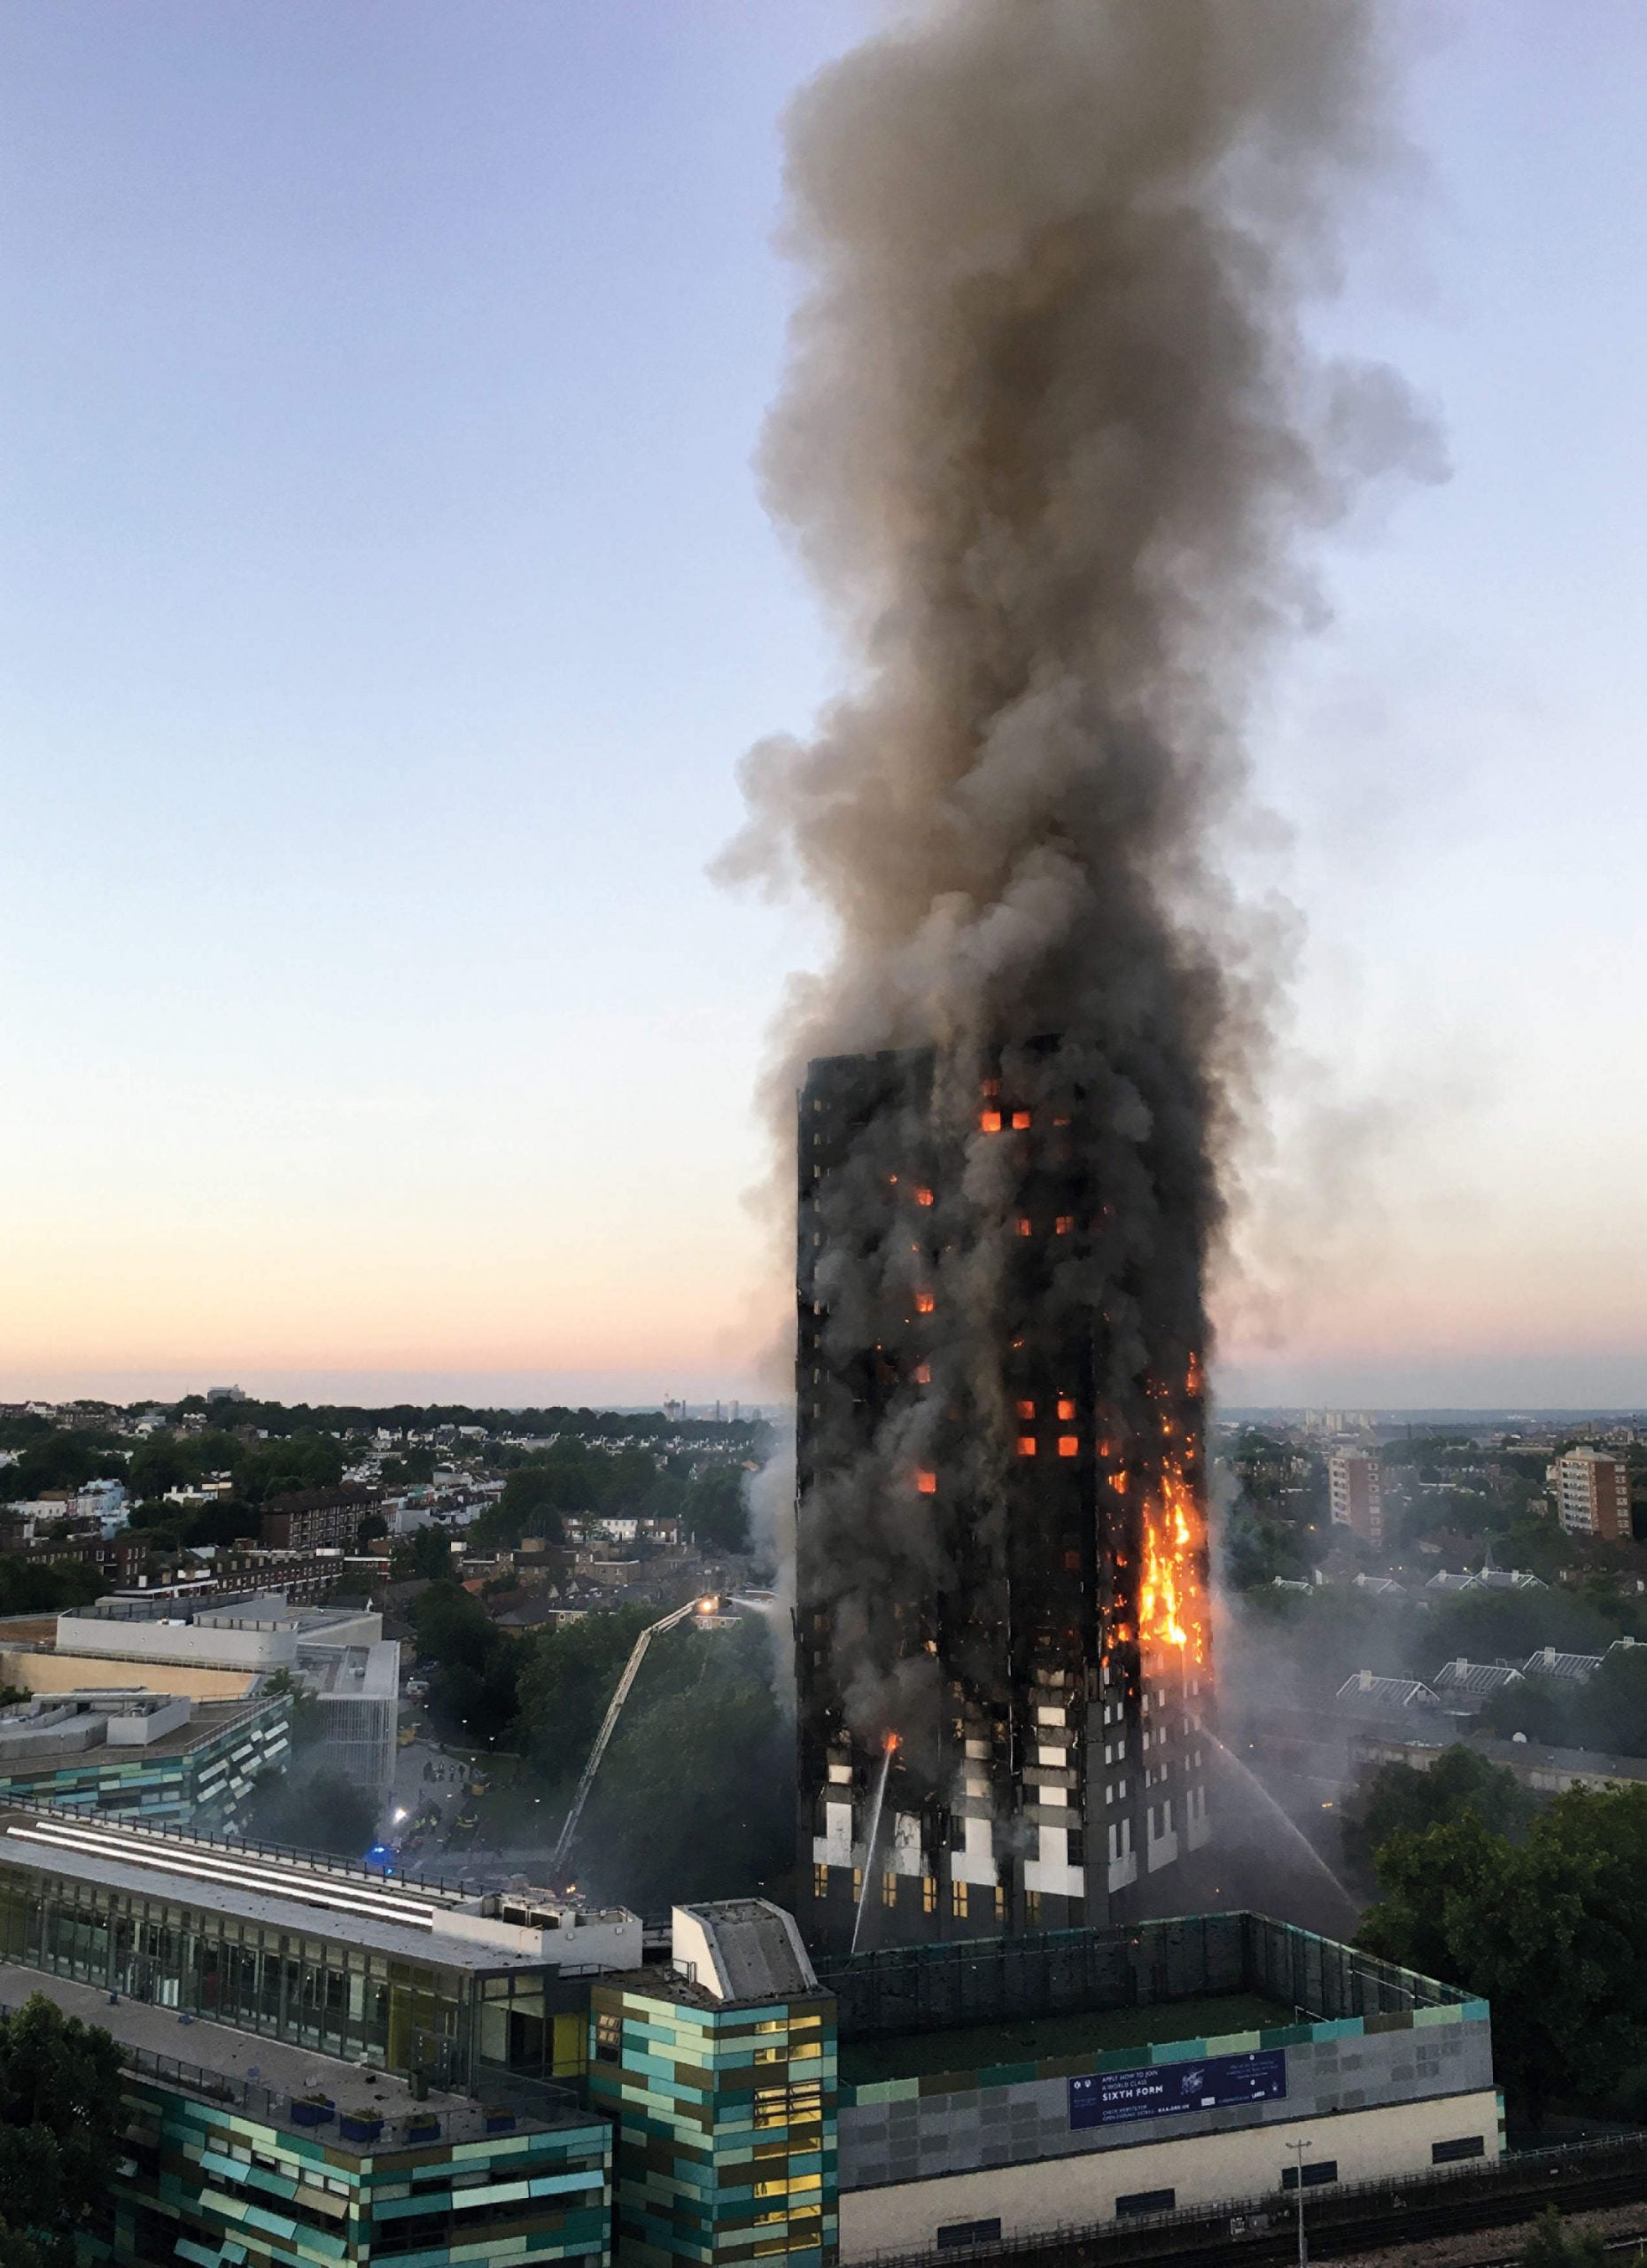 Grenfell's long shadow: how the fatal fire became an ethical tipping point for Britain